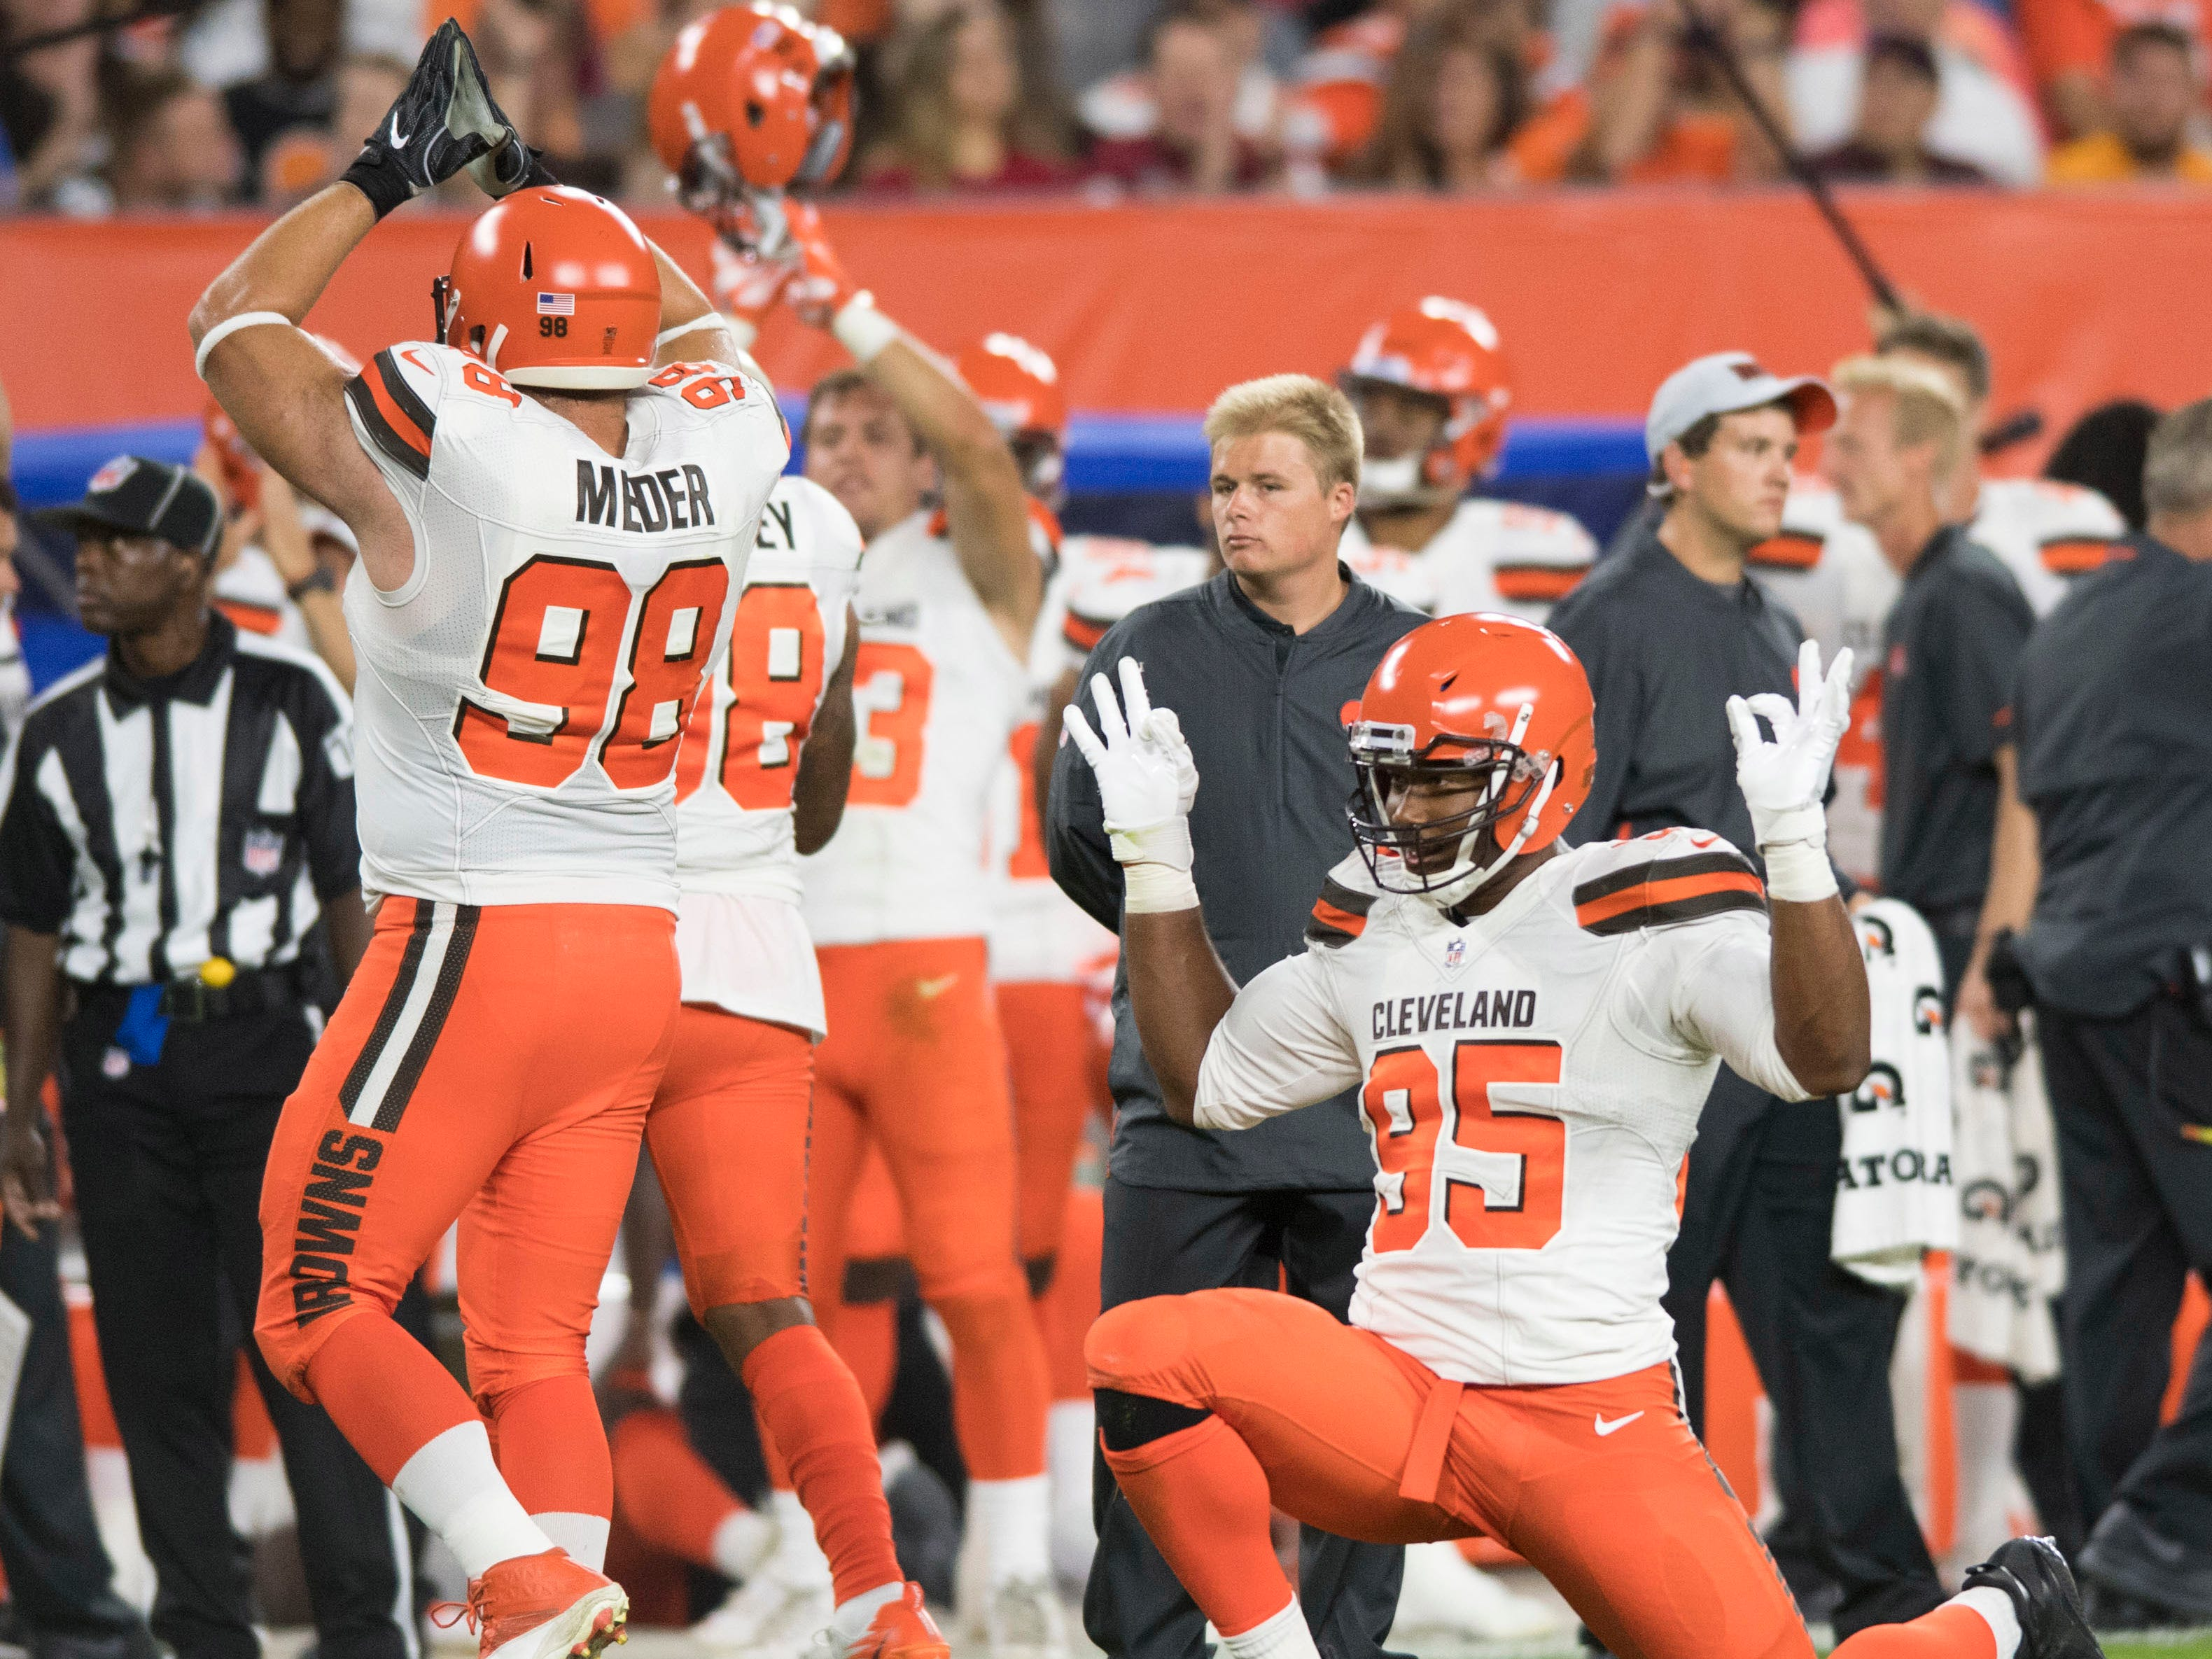 Cleveland Browns defensive tackle Jamie Meder (98) and defensive end Myles Garrett (95) celebrate after a replay showed that Garrett sacked Philadelphia Eagles quarterback Nick Foles for a safety during the first quarter at FirstEnergy Stadium.